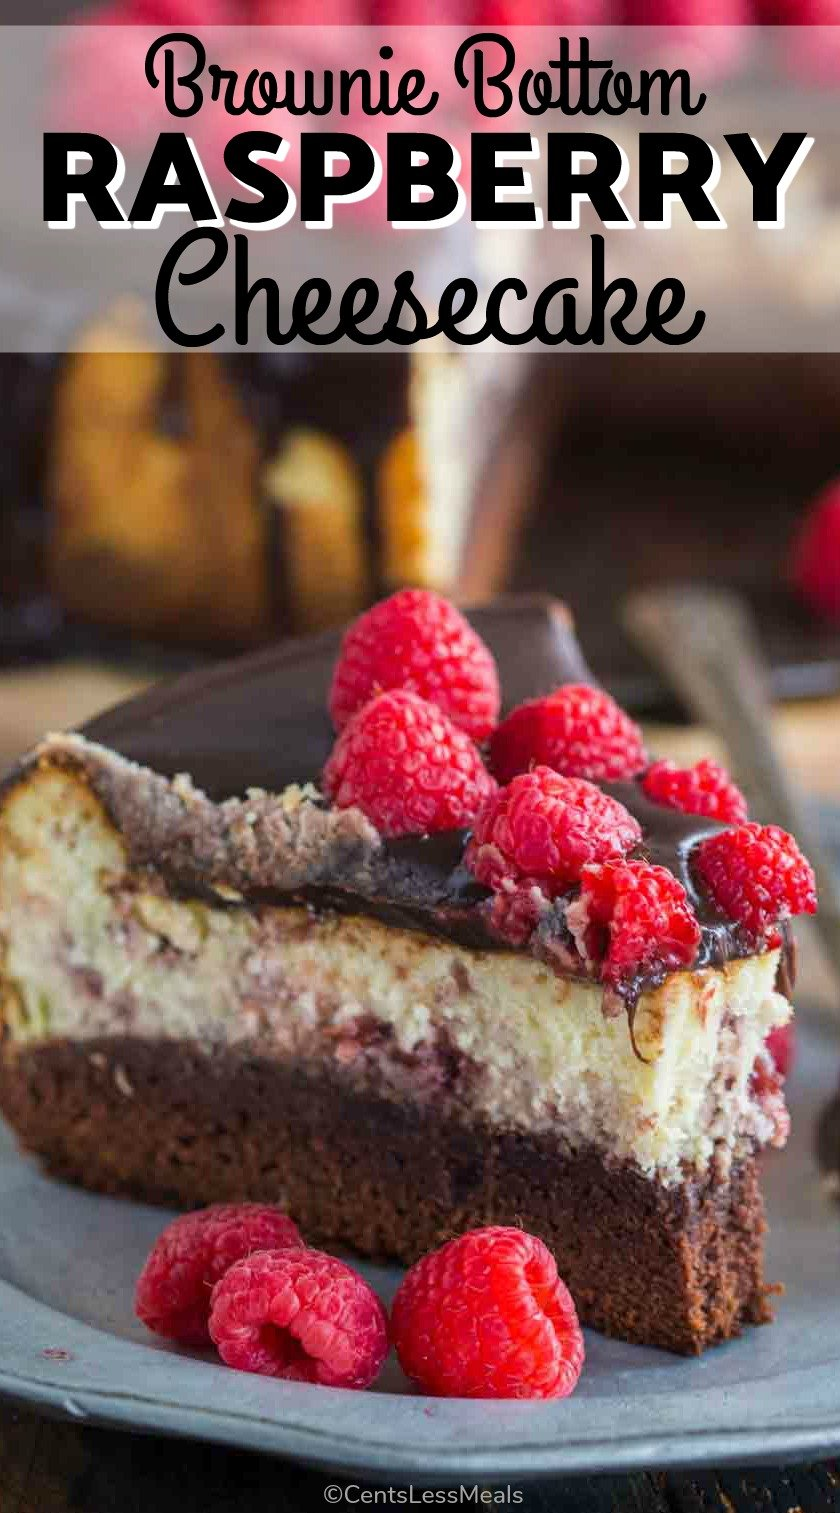 Brownie Bottom Raspberry Cheesecake is a sinful combination of chocolate and creamy raspberry cheesecake topped with chocolate ganache. #cheesecake #cheesecakewithfruit #brownie #dessert #easydessert #raspberry #censtlessmeals